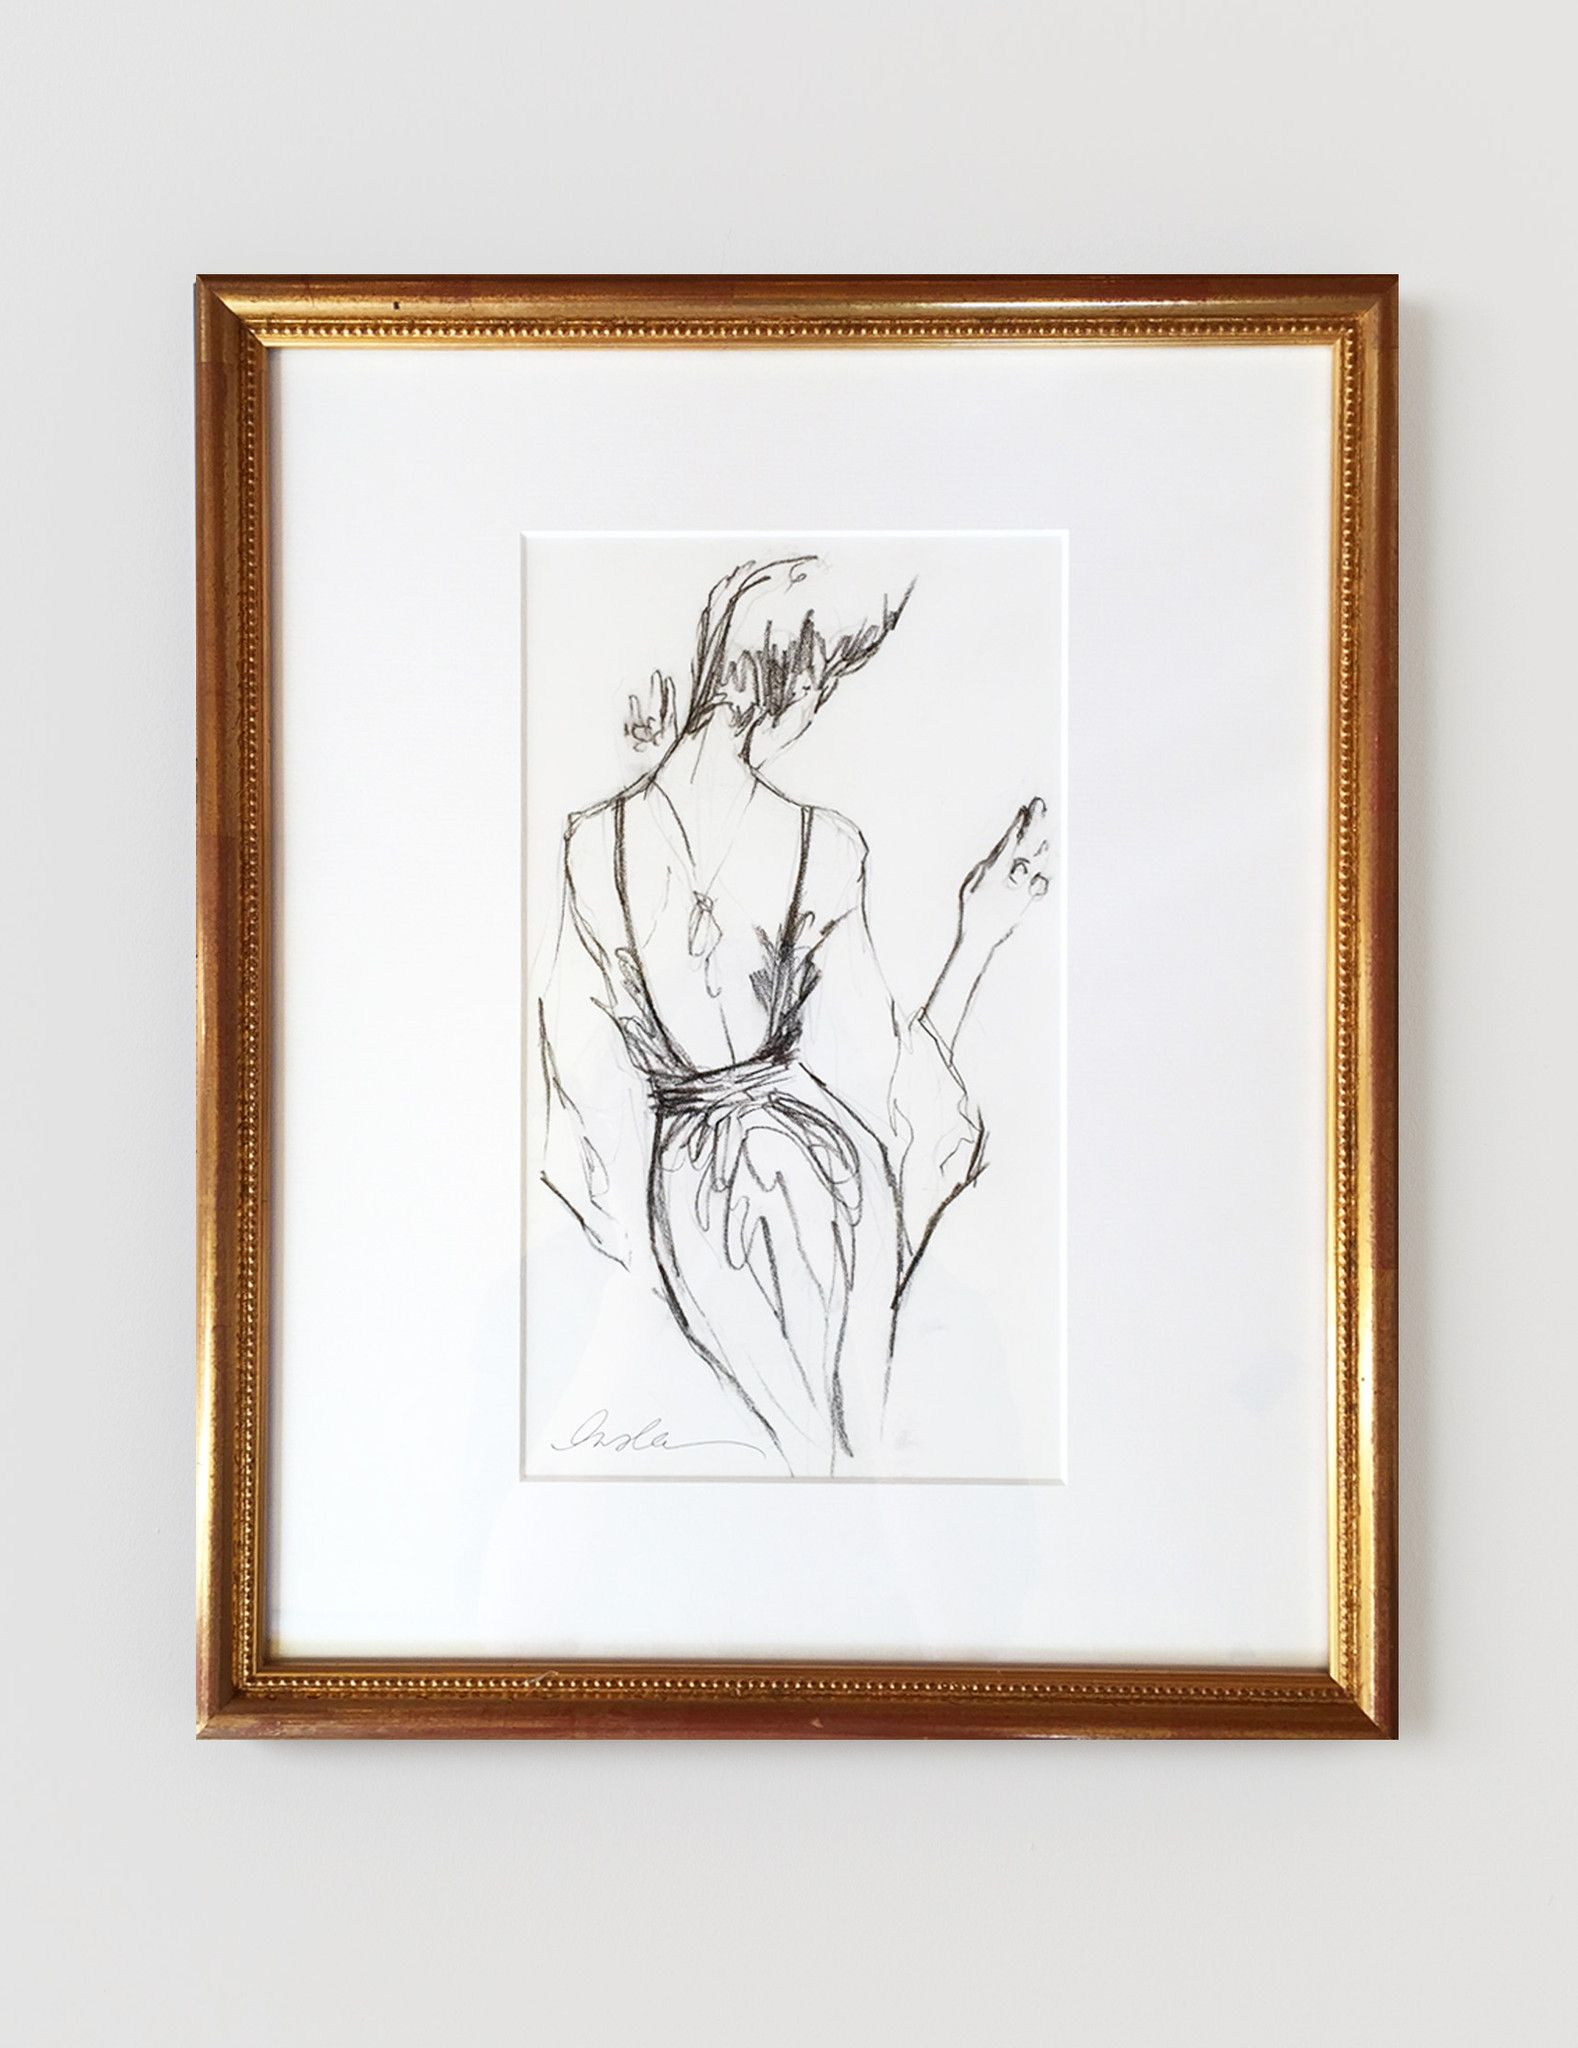 The perfect pencil sketch framed original inslee by design